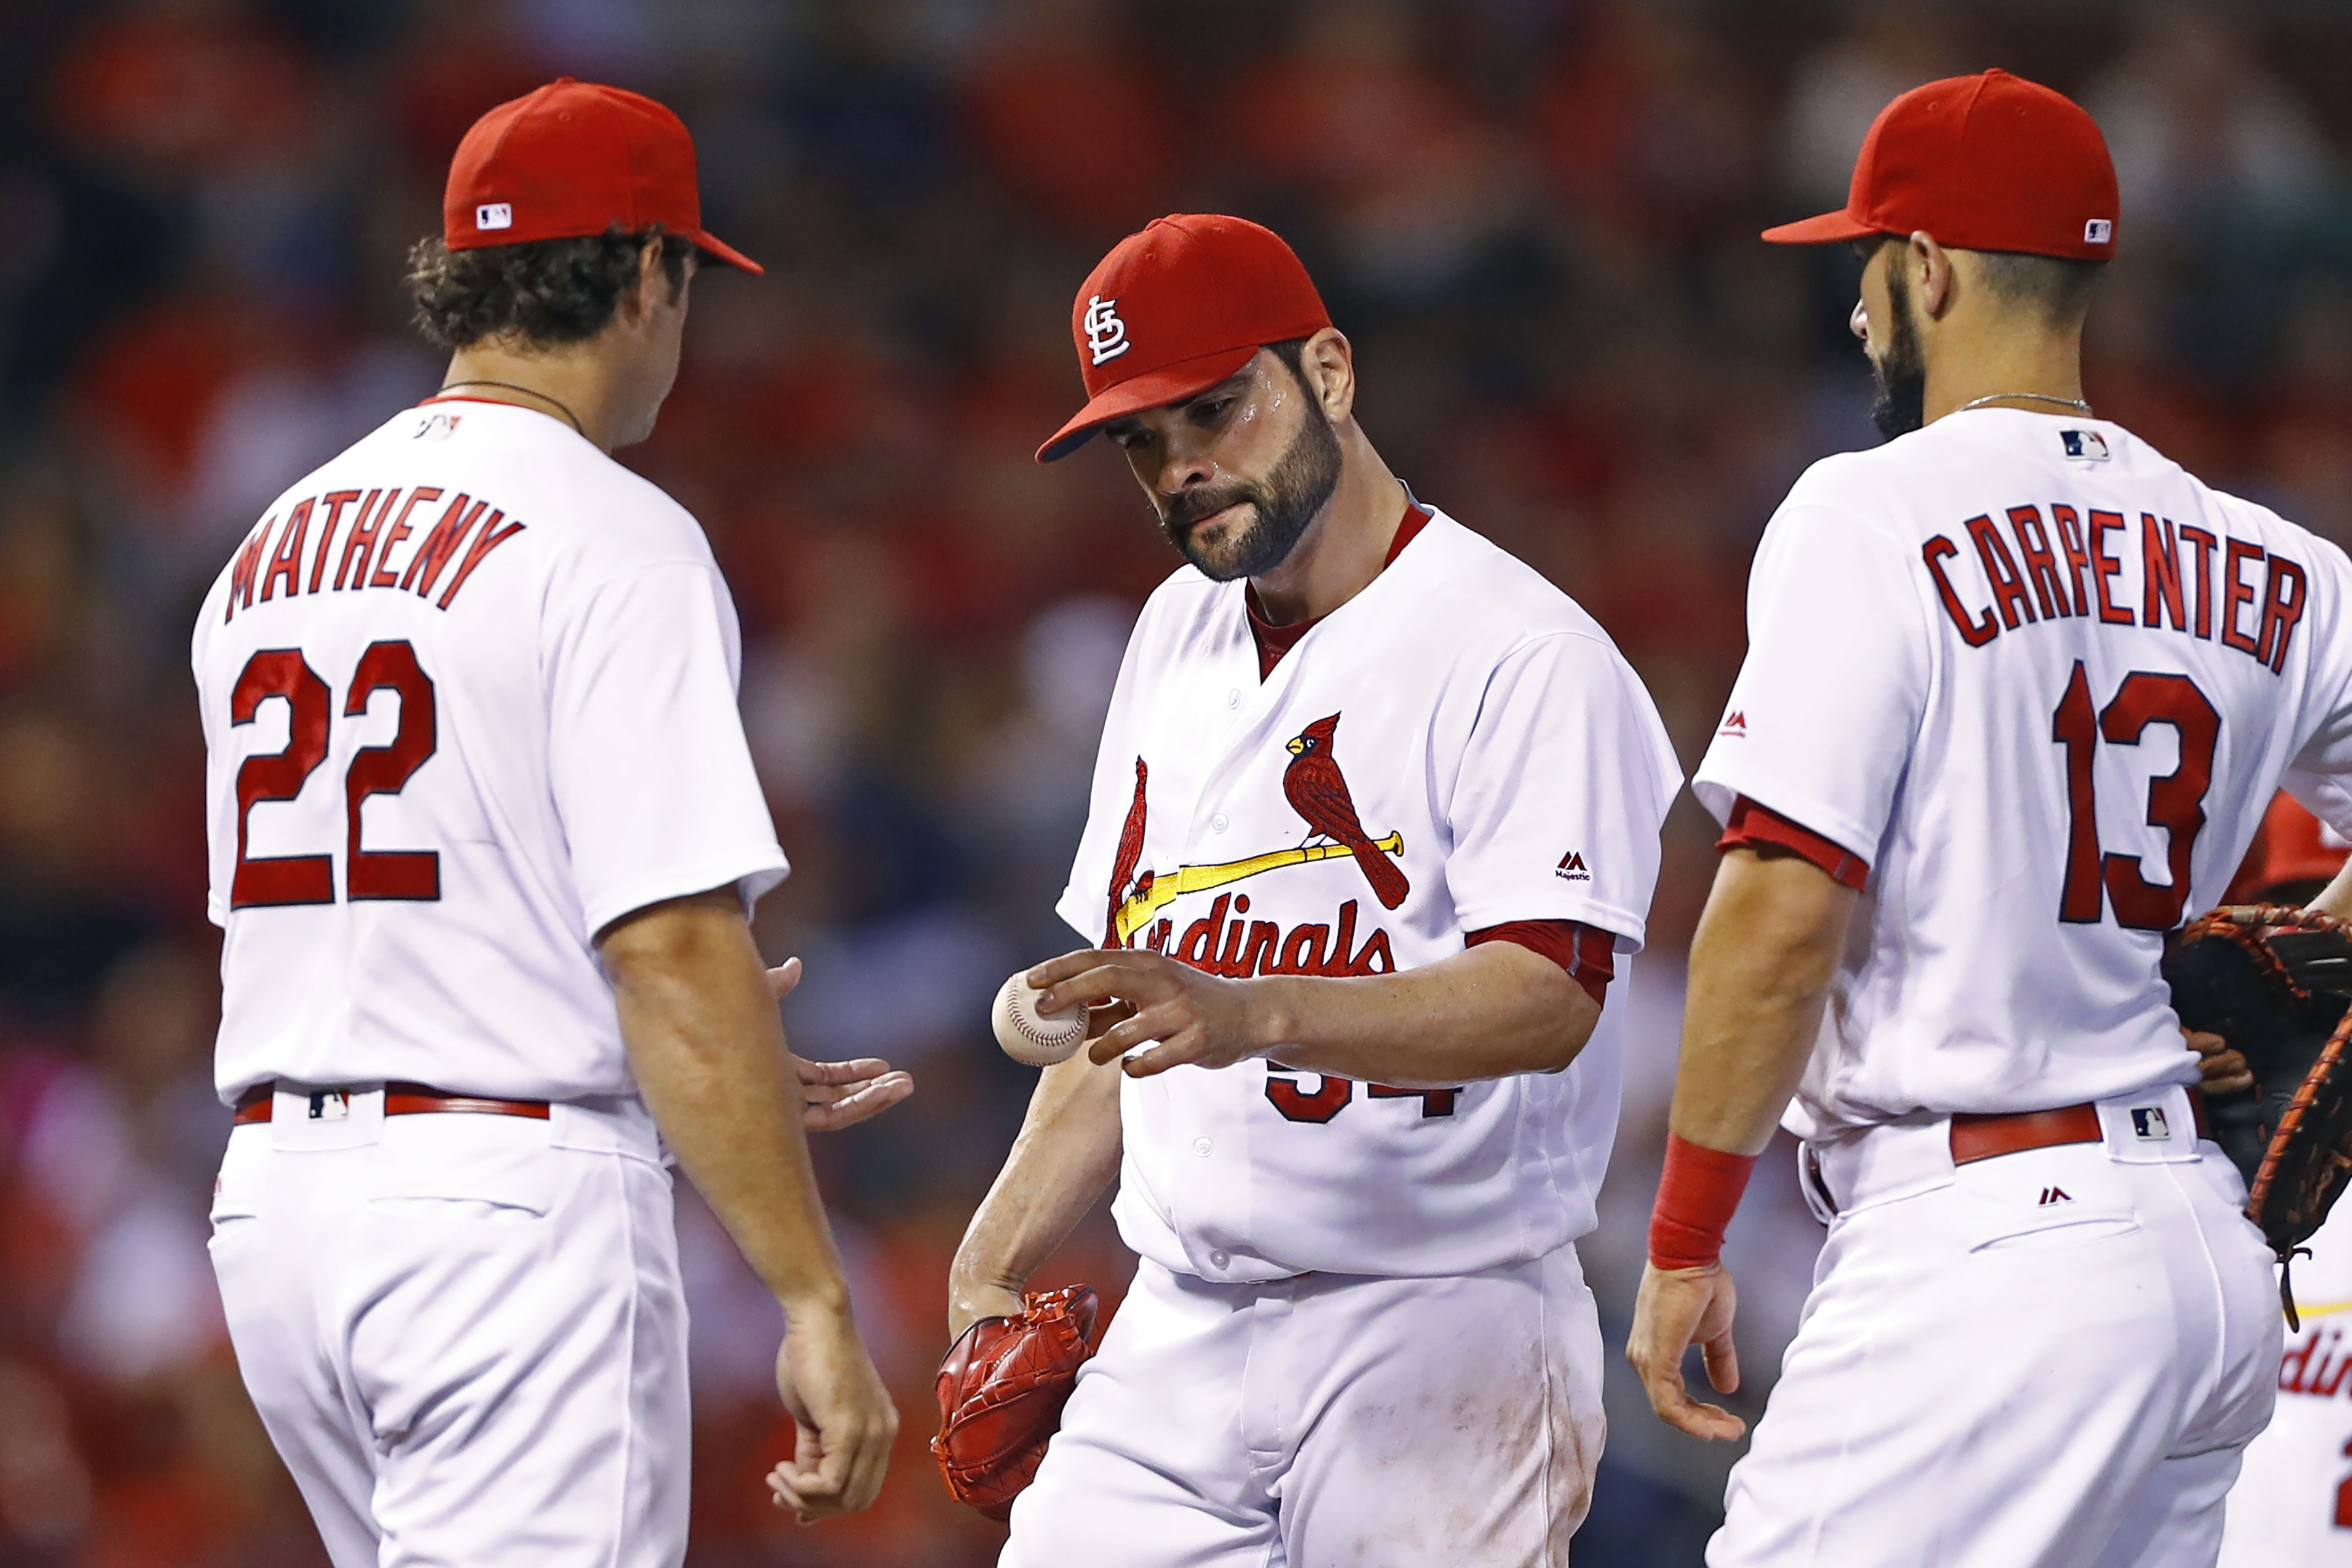 St. Louis Cardinals starting pitcher Jaime Garcia, center, hands the ball over to manager Mike Matheny, as Matt Carpenter watches during the fourth inning of a baseball game against the Milwaukee Brewers, Thursday, Sept. 8, 2016, in St. Louis. (AP Photo/B